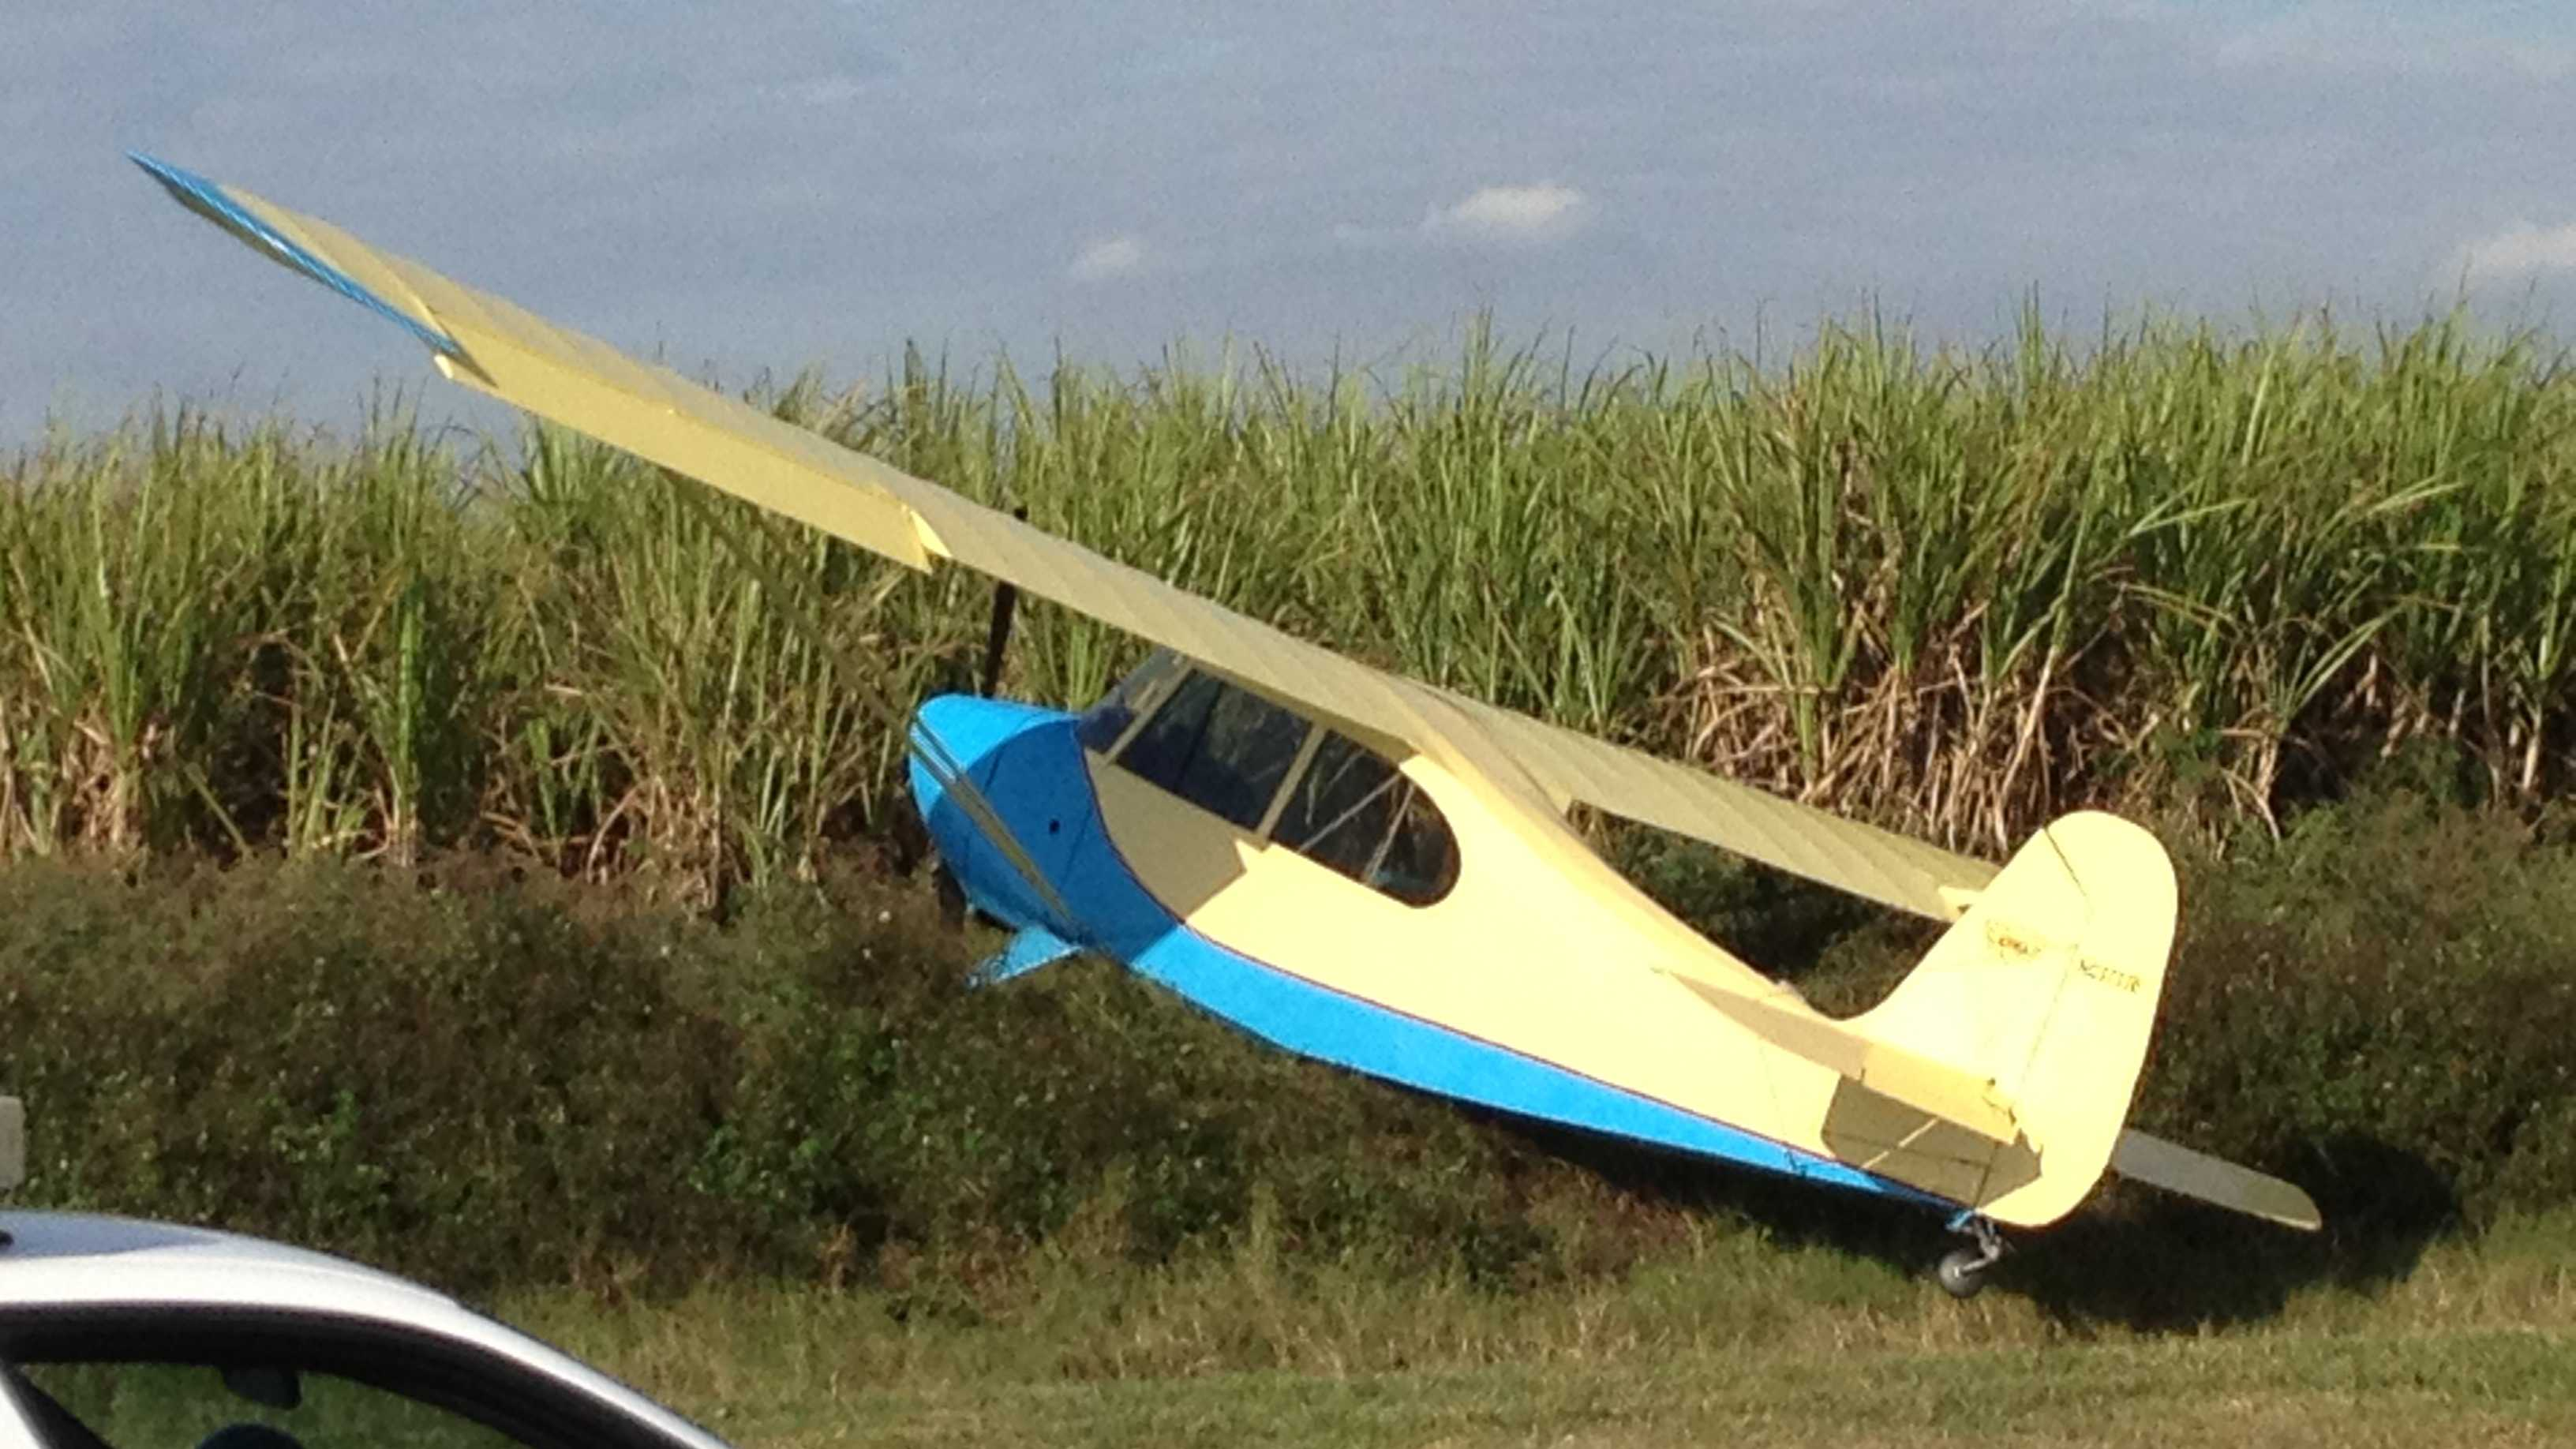 This single-engine crop duster landed in a sugar cane field off Gator Boulevard in Belle Glade.